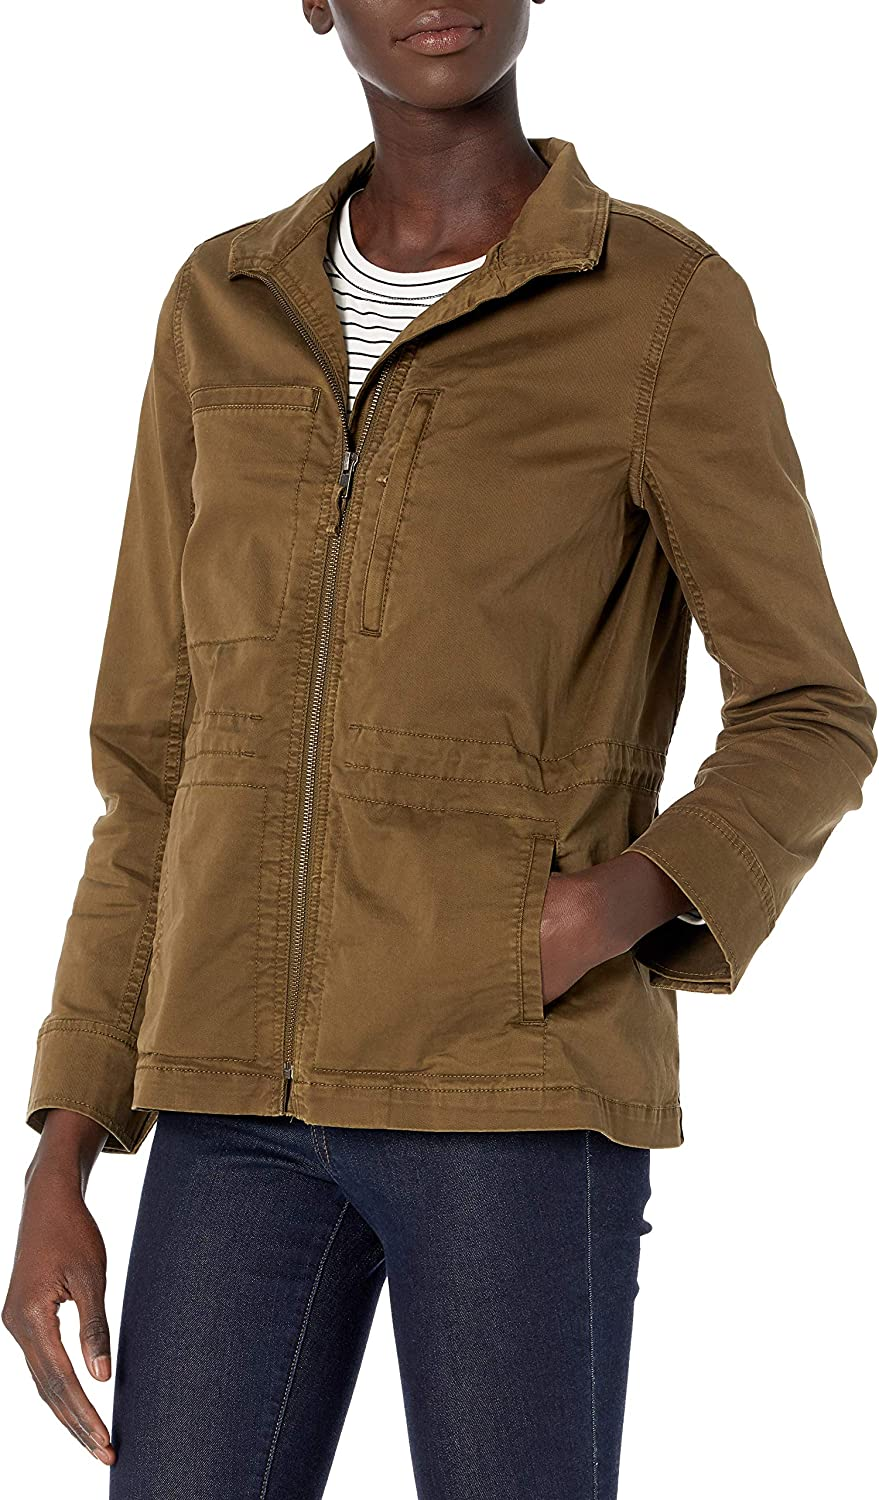 Amazon Brand - Daily Ritual Cargo Las Vegas Mall Our shop most popular Women's Military Jacket